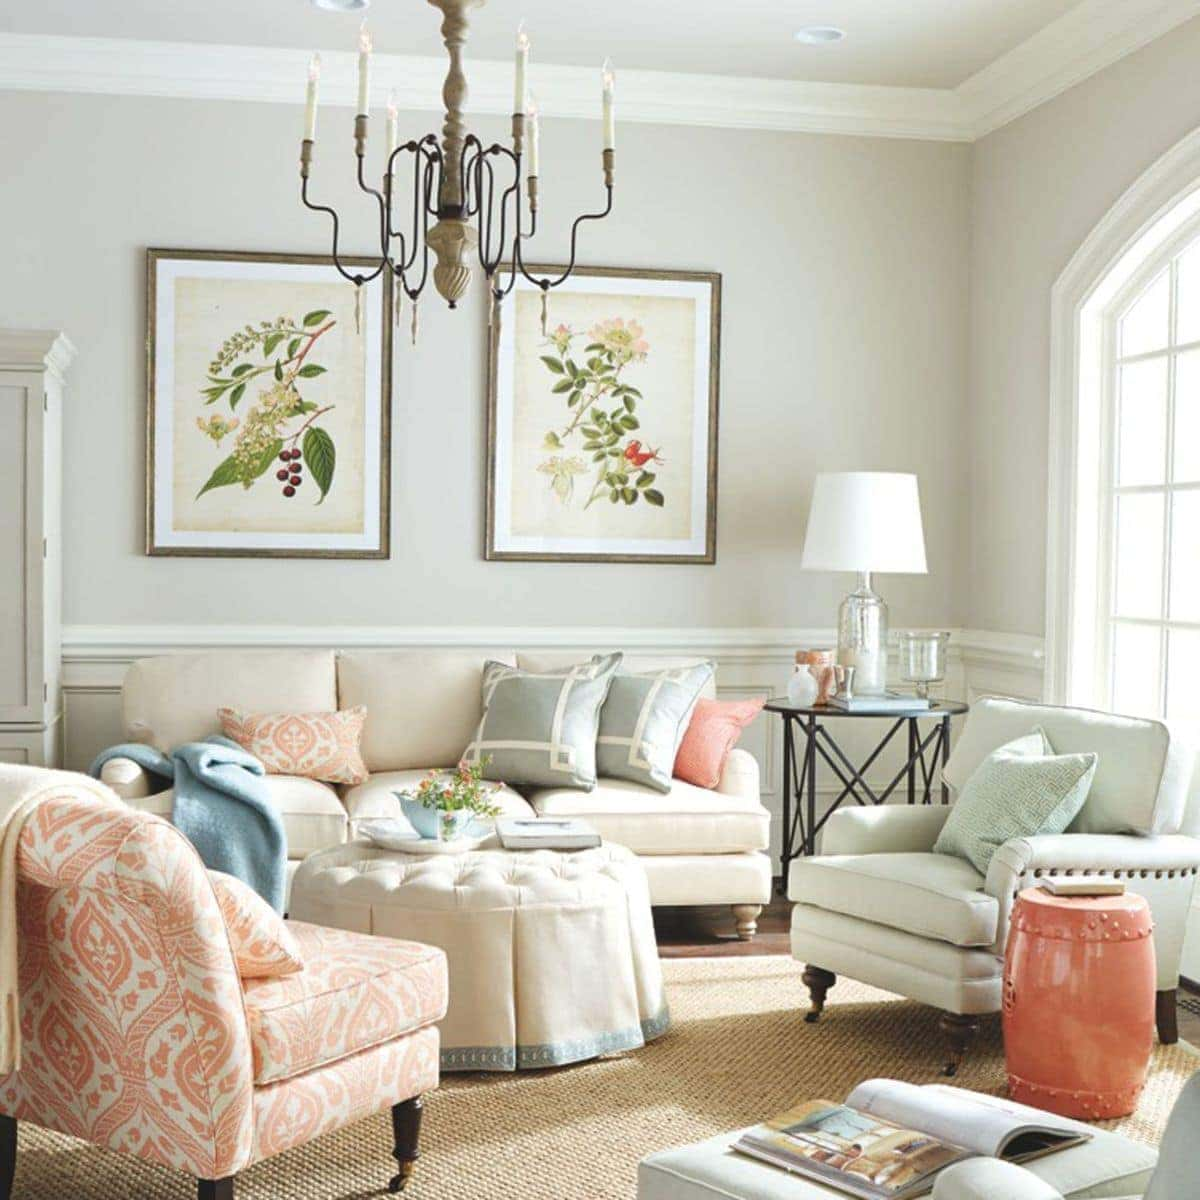 My dream home julie blanner entertaining home design Living room styles ideas